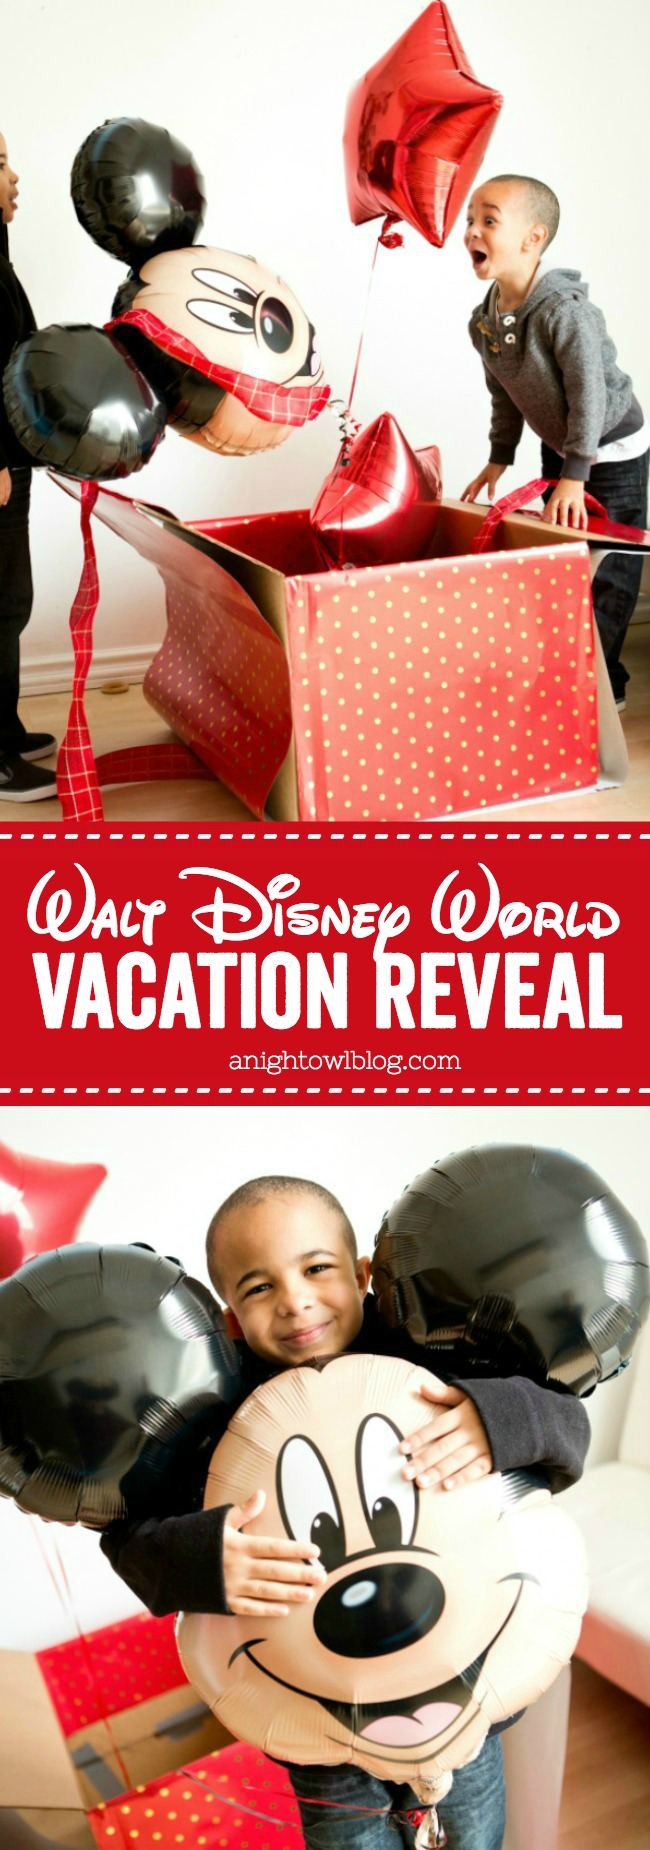 Such a fun idea for a Walt Disney World Vacation Reveal with free downloadable tag!